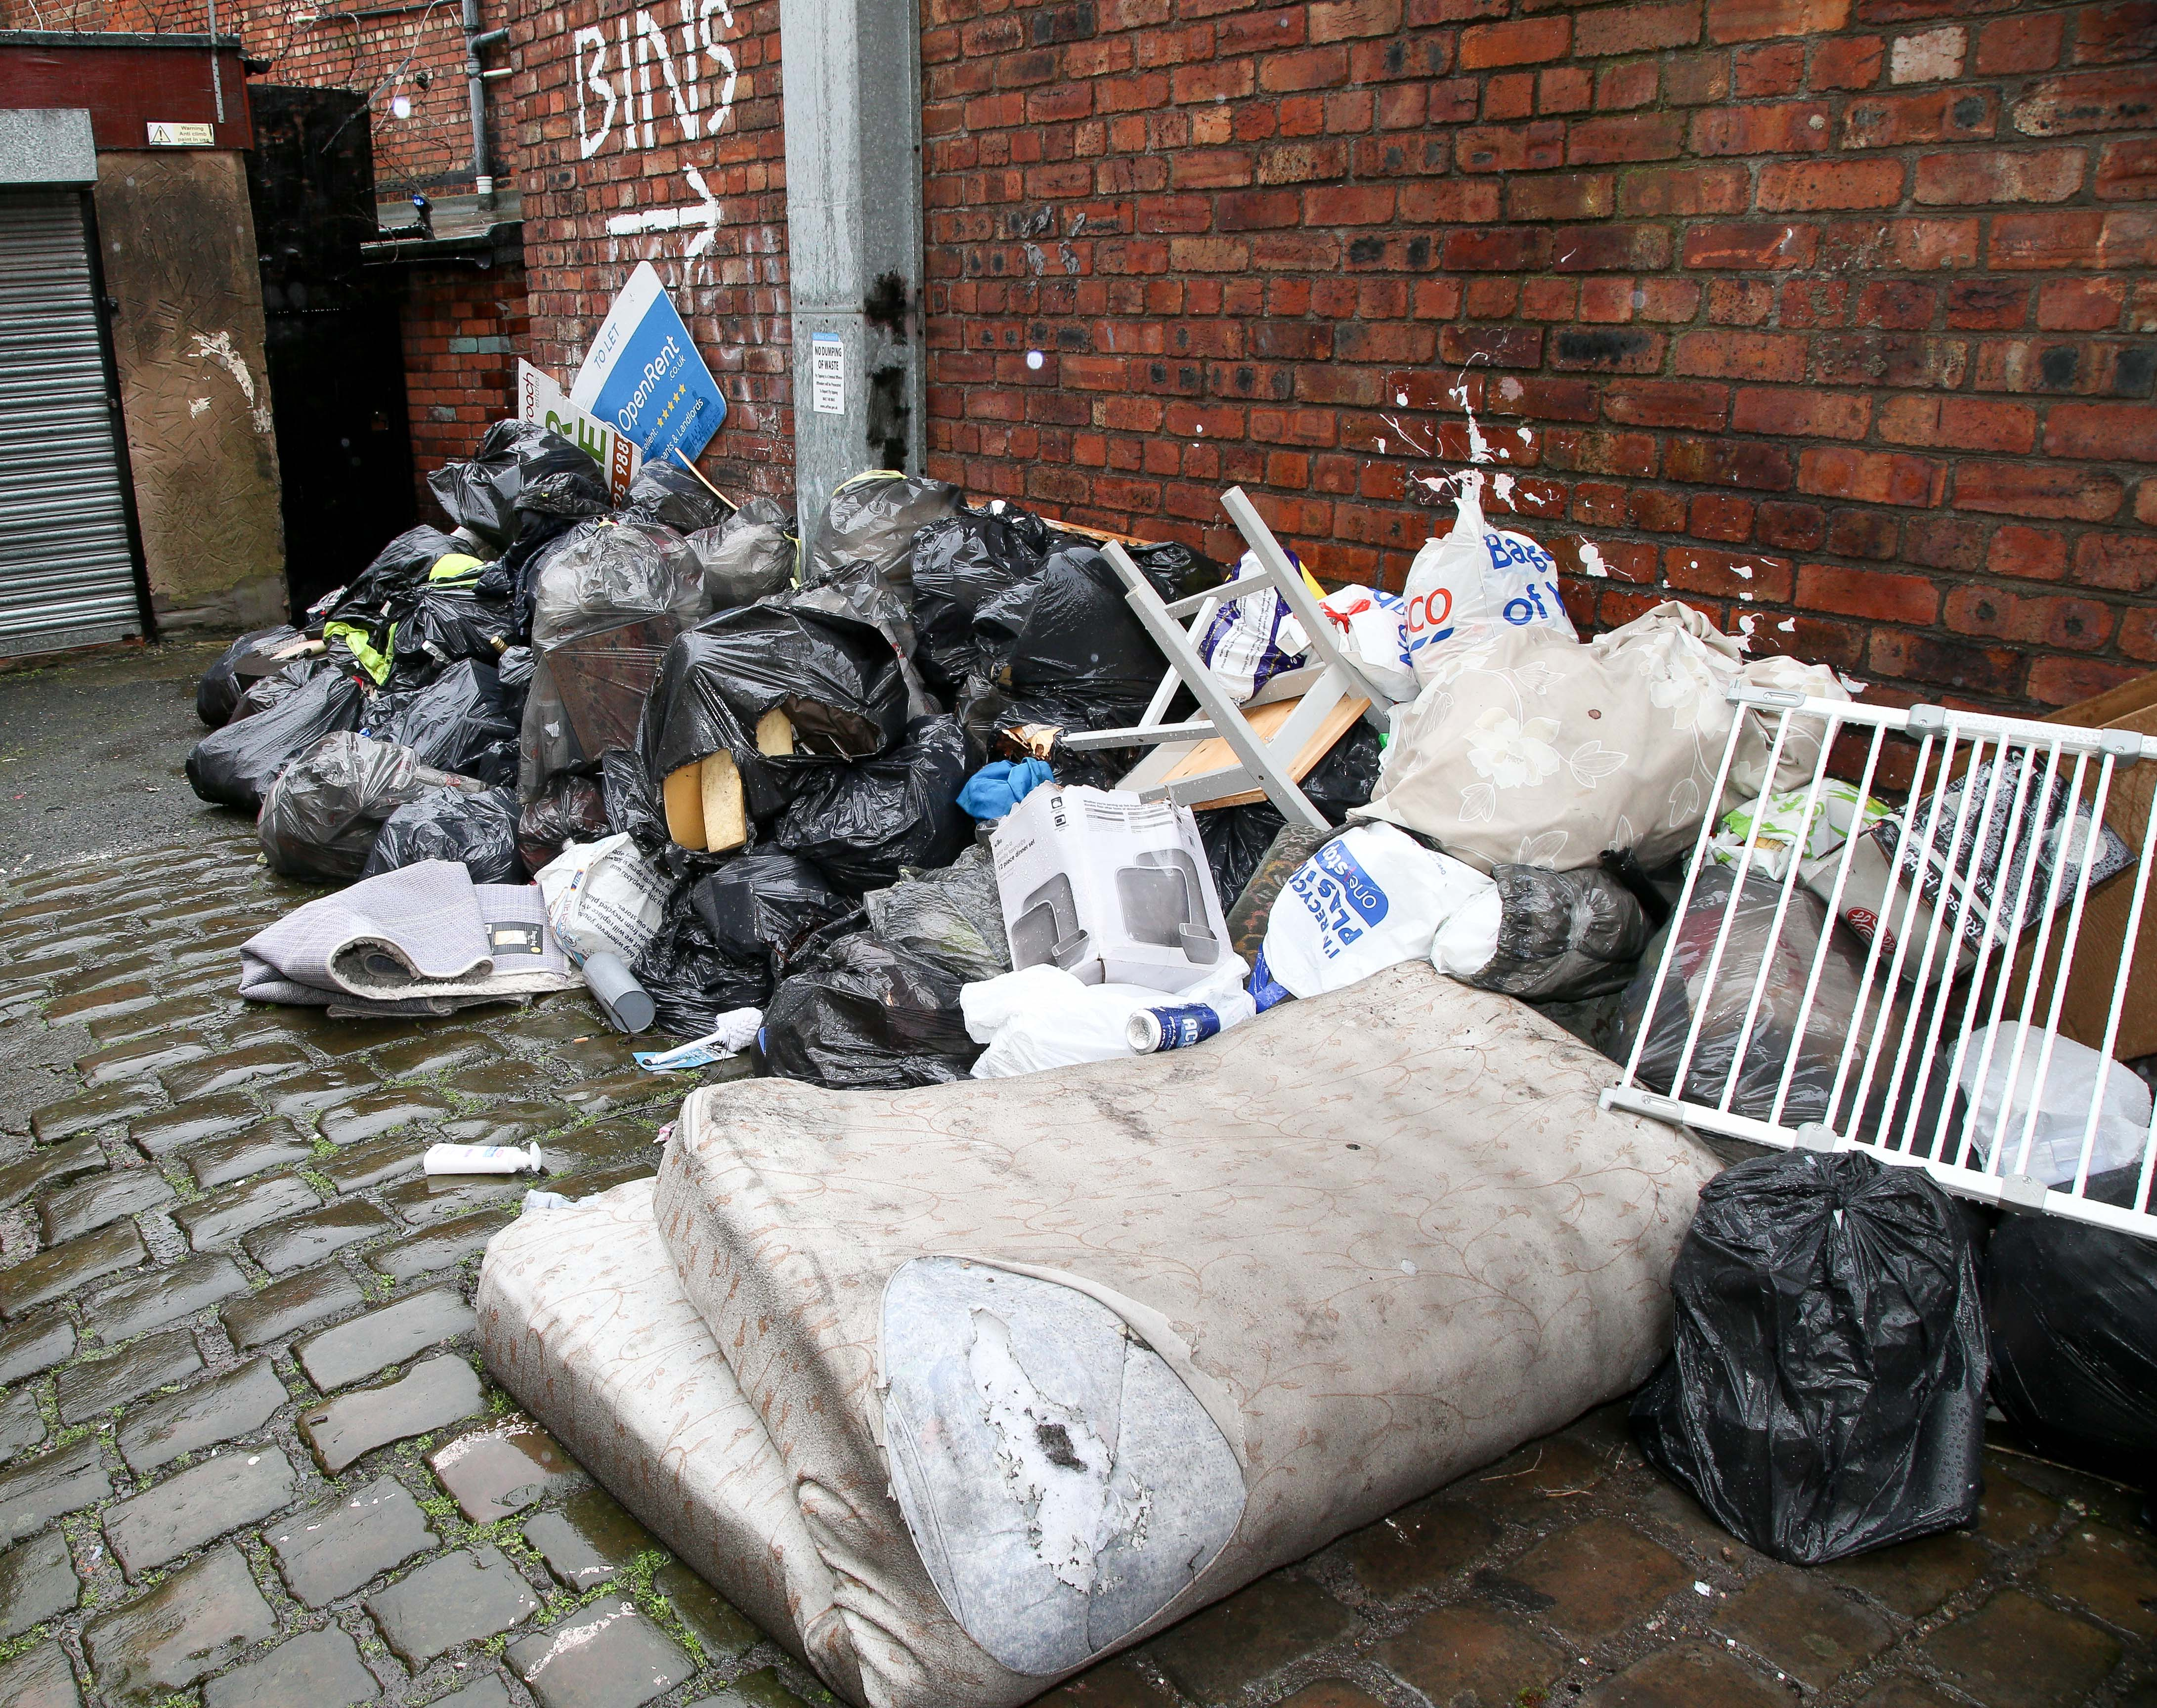 Grot-spot fly-tipping is cleared by council